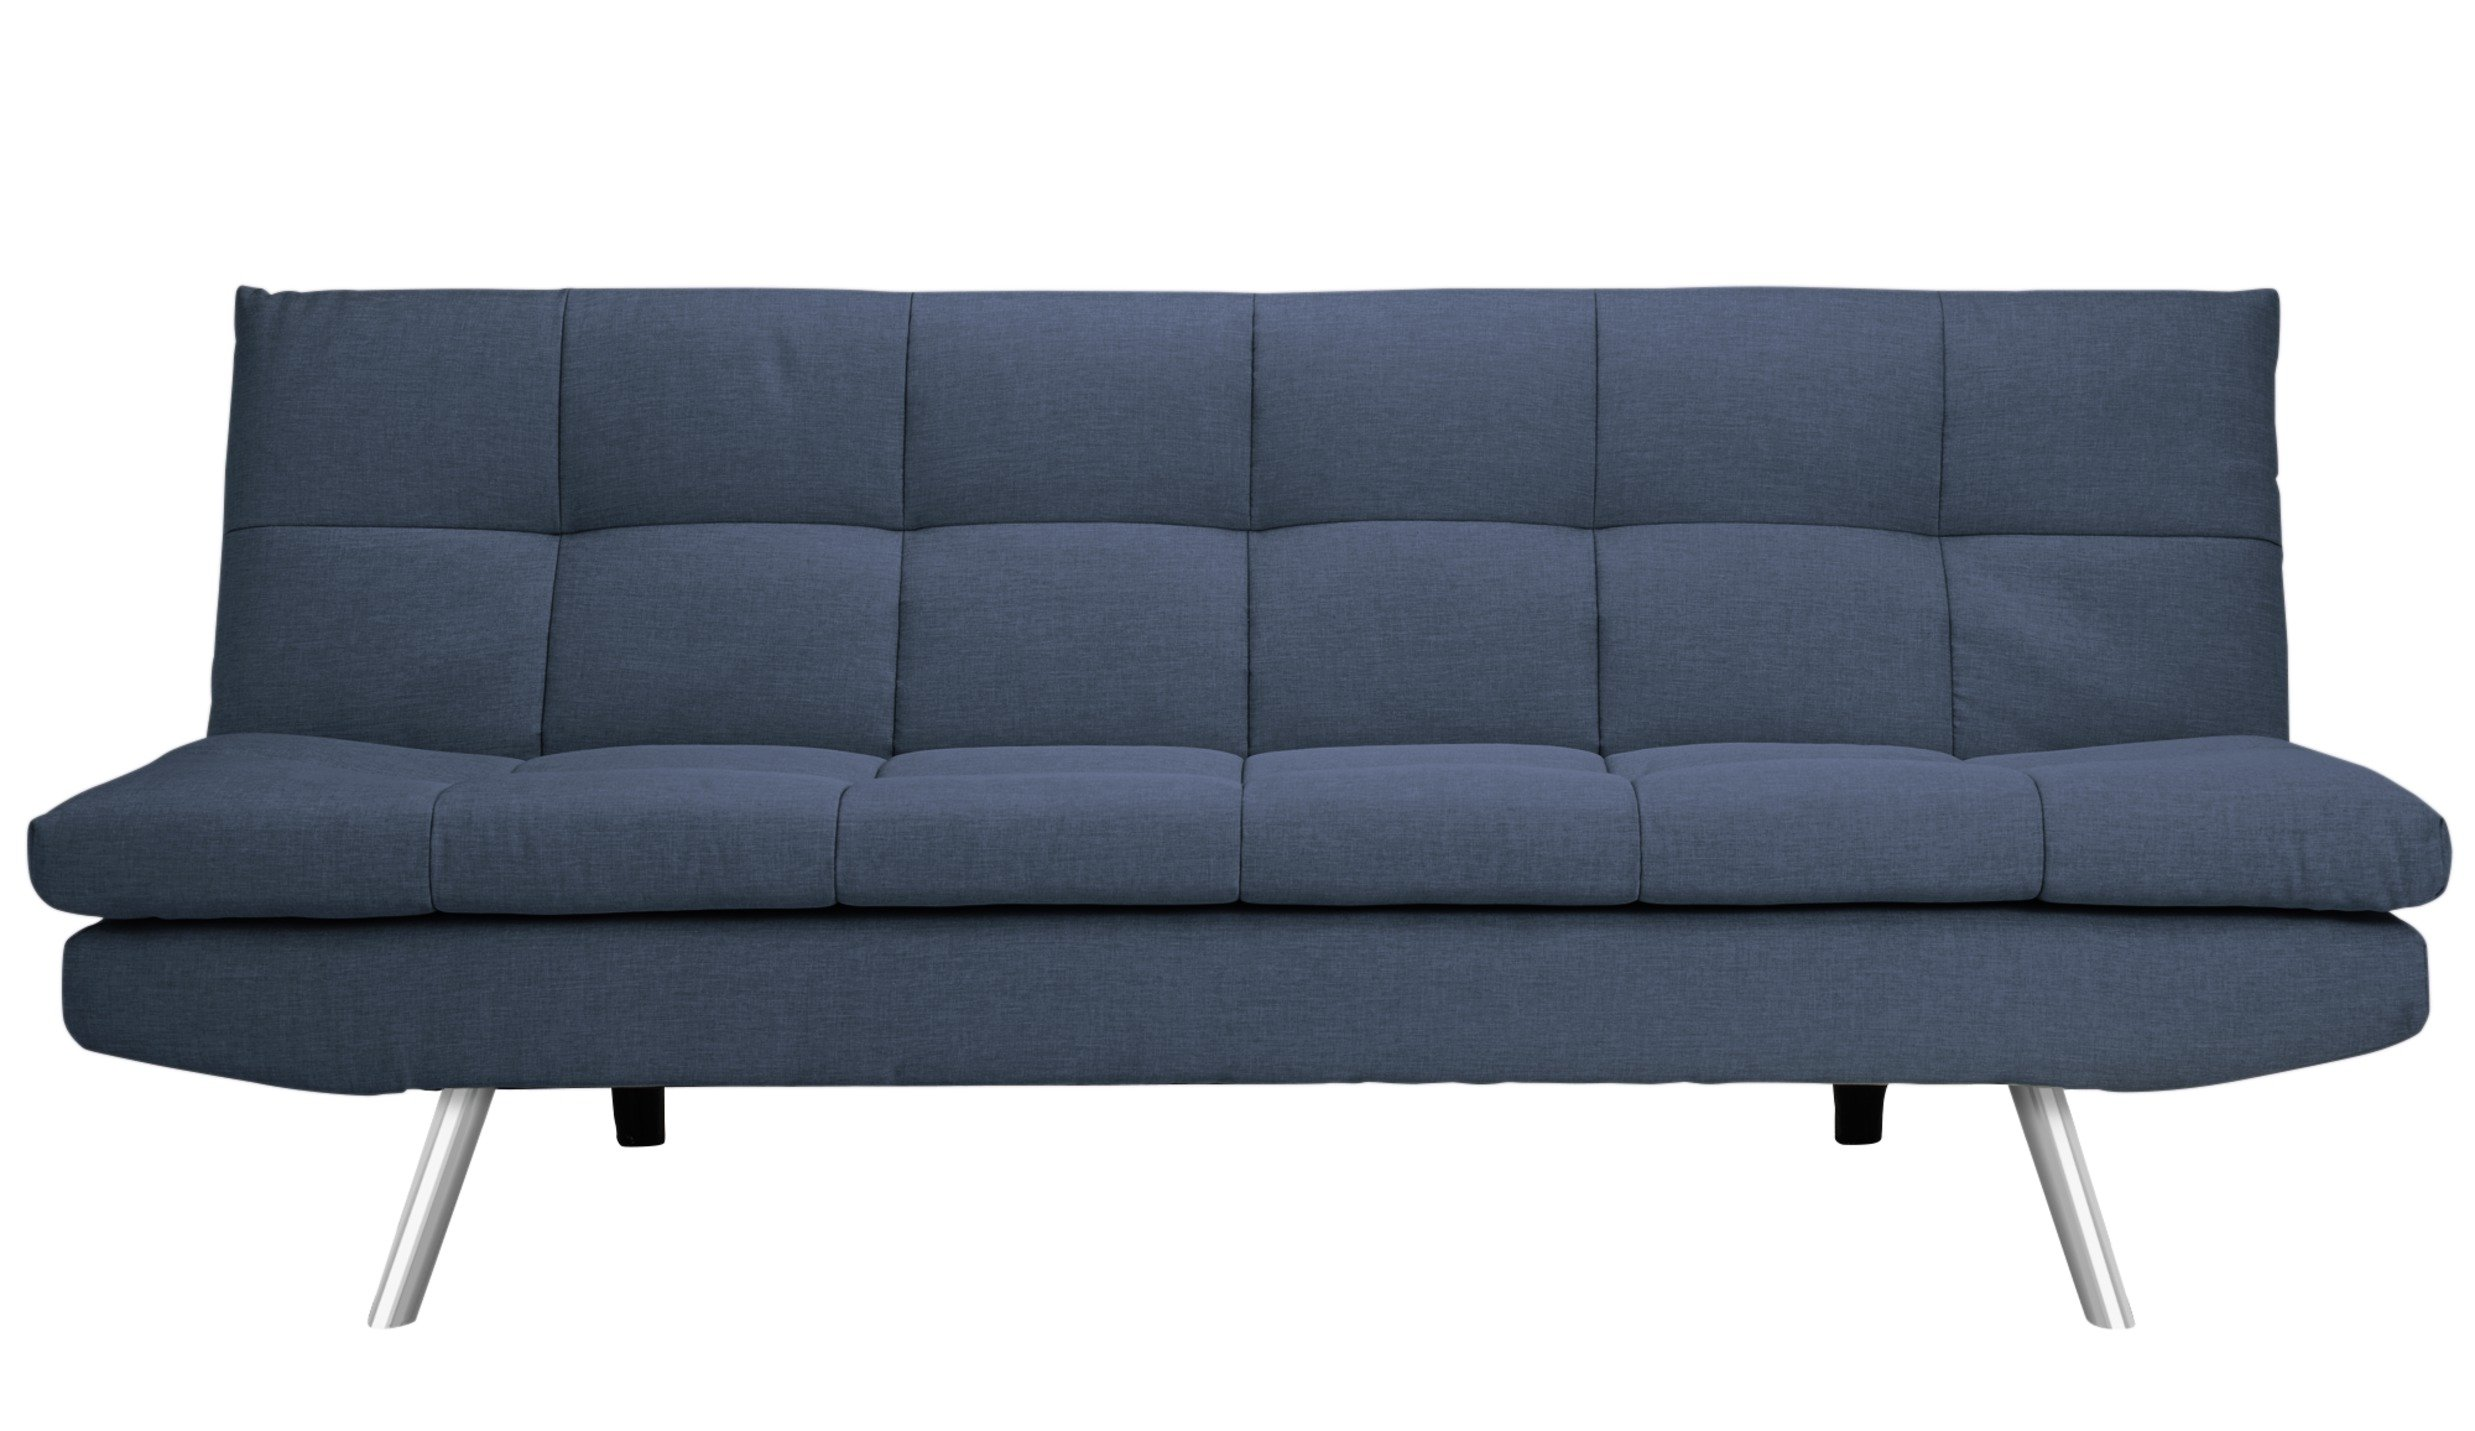 Buy Argos Home Nolan 3 Seater Fabric Sofa Bed - Denim Blue | Sofa